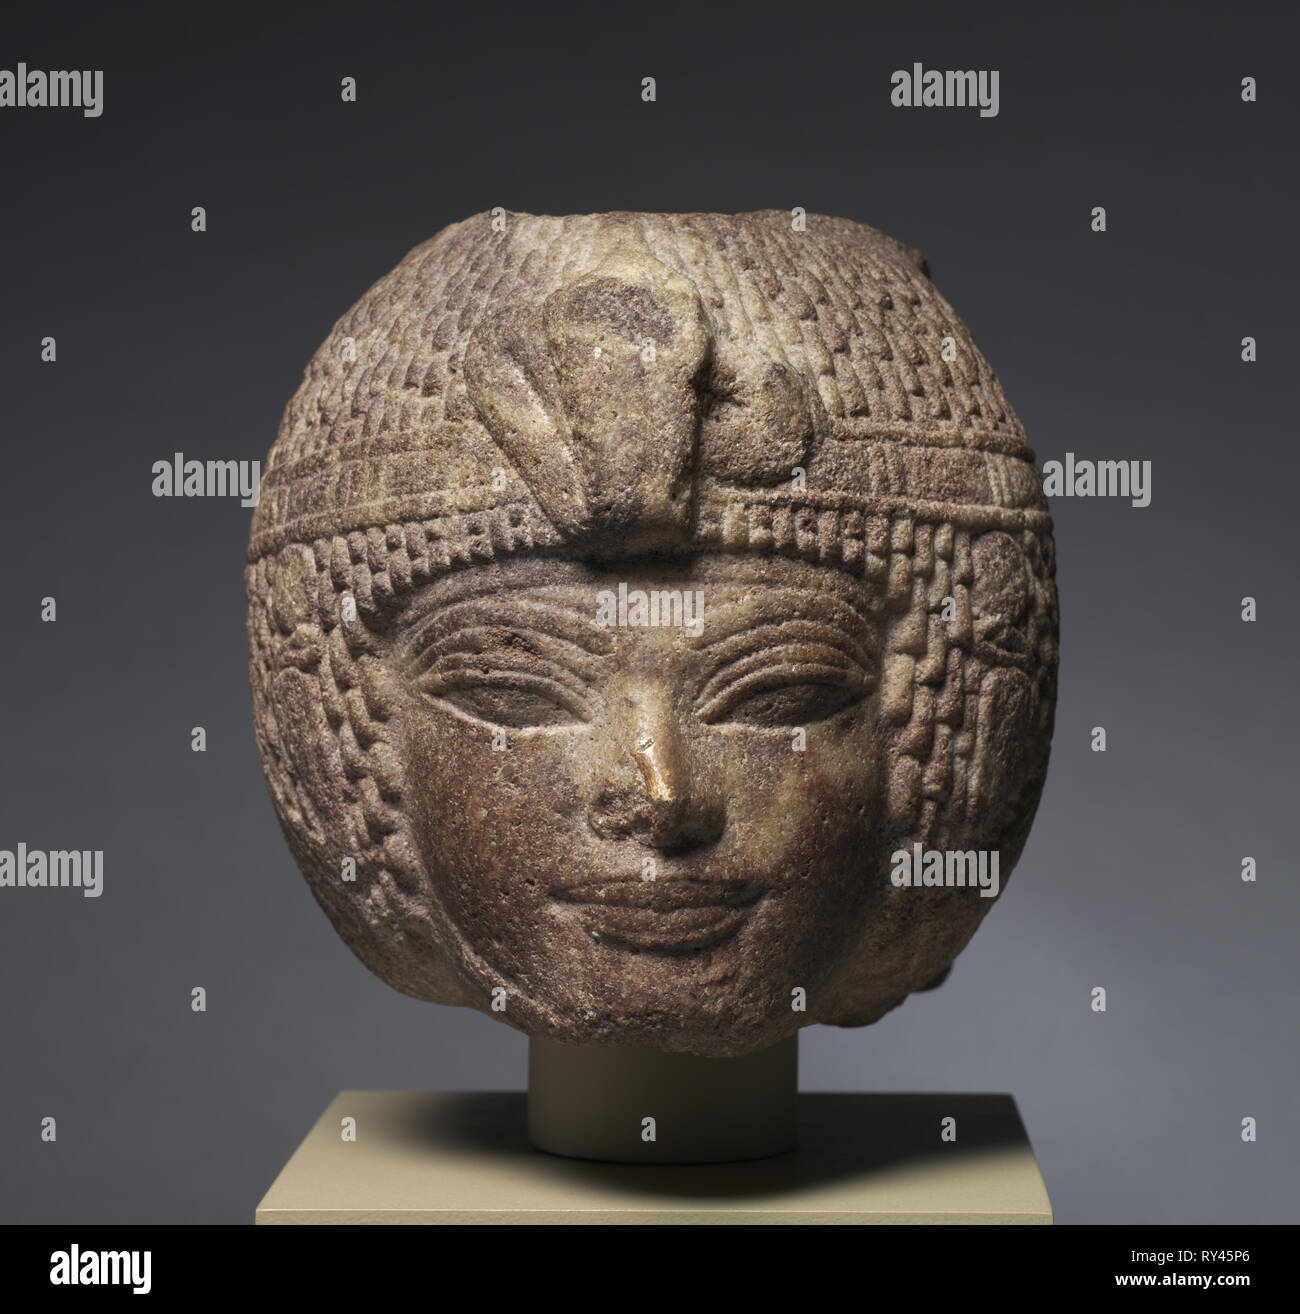 Head of Amenhotep III Wearing the Round Wig, c. 1391-1353 BC. Egypt, New Kingdom, Dynasty 18, reign of Amenhotep III, 1391-1353 BC. Brown quartzite; overall: 17.3 x 17 x 25.3 cm (6 13/16 x 6 11/16 x 9 15/16 in - Stock Image